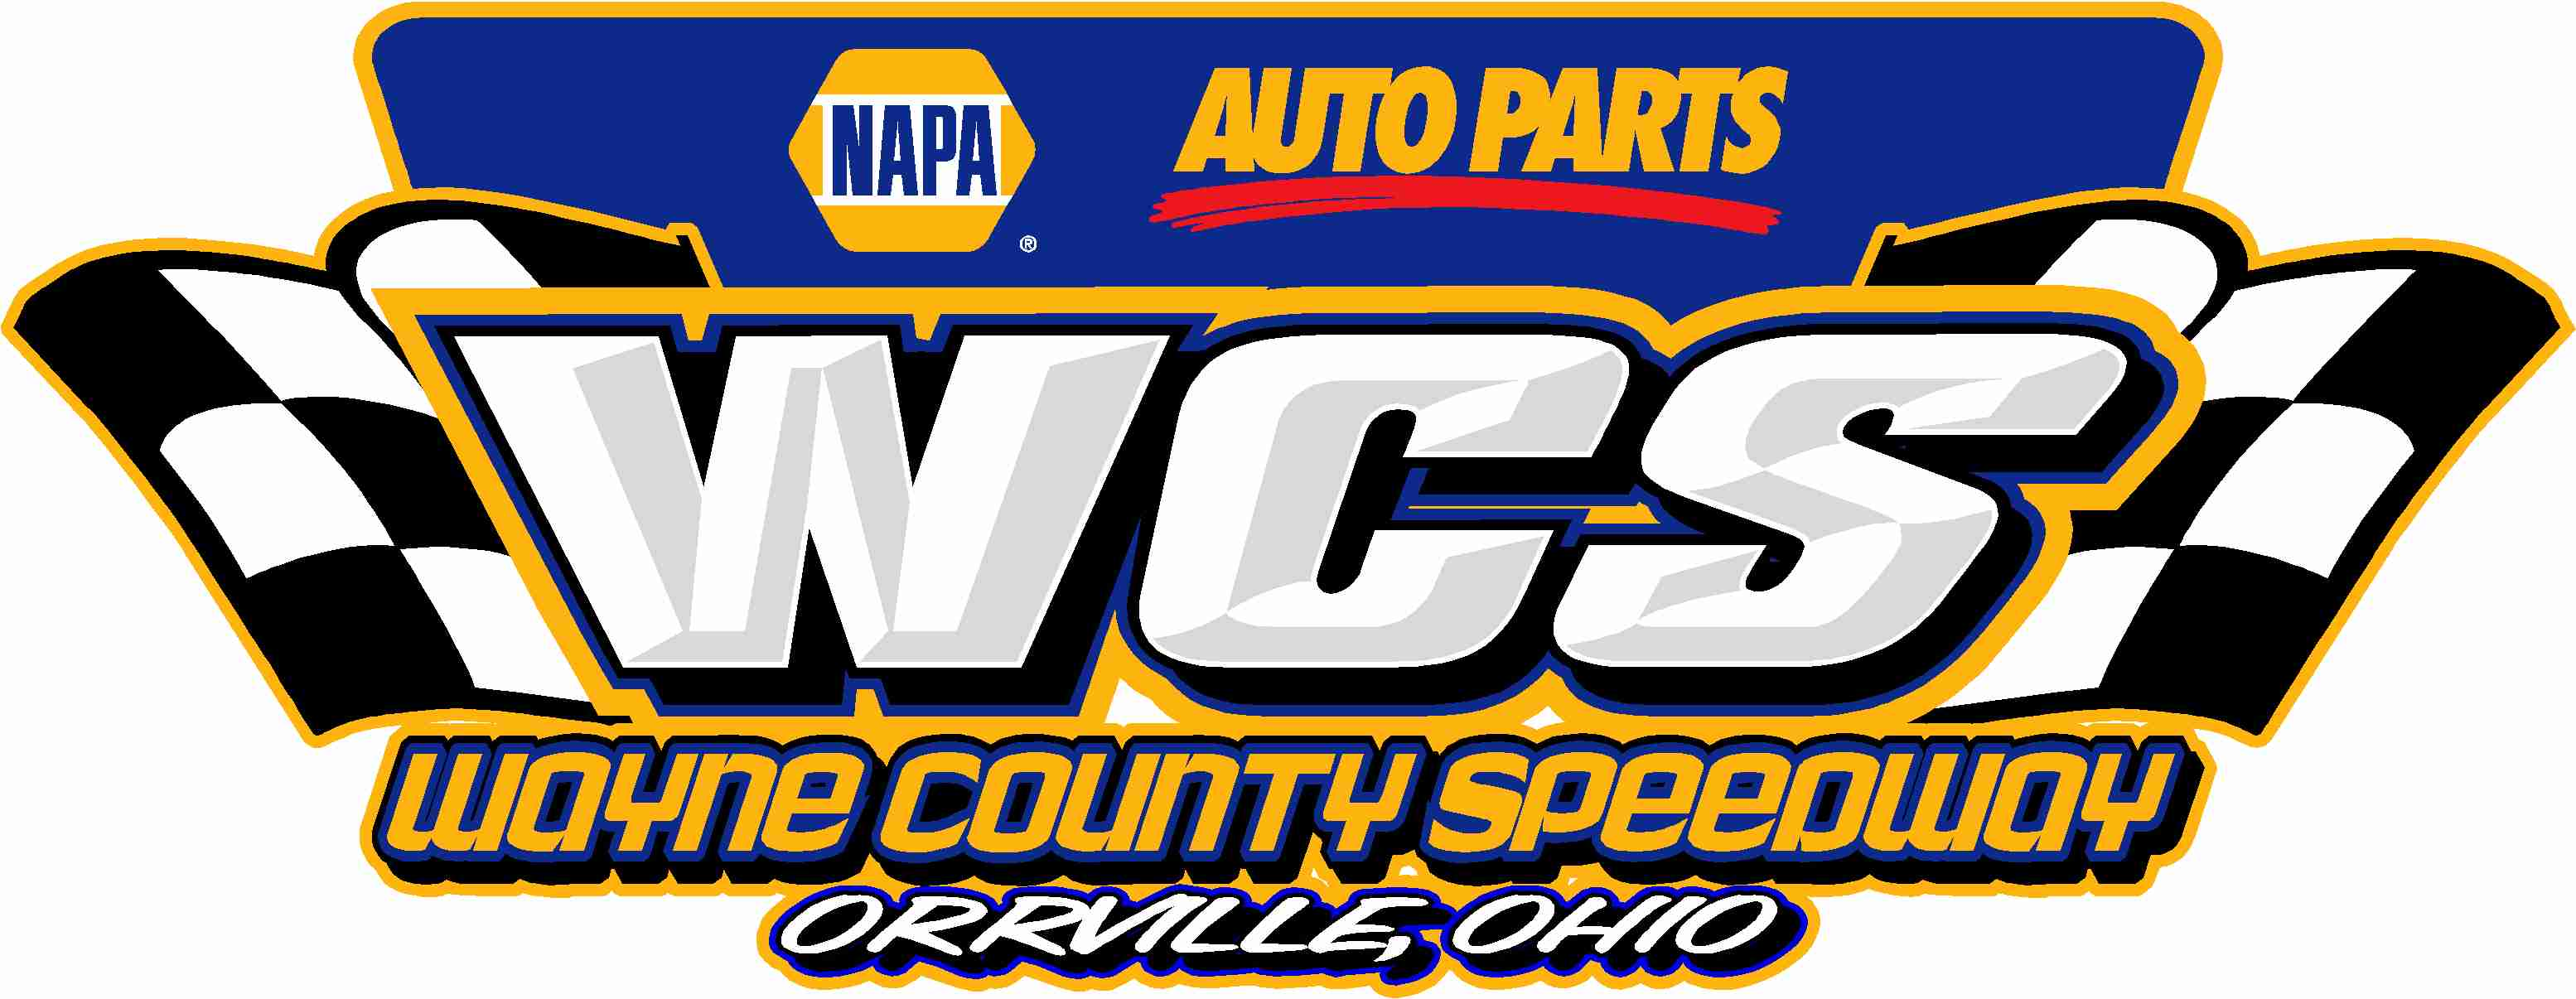 Image result for wayne county speedway